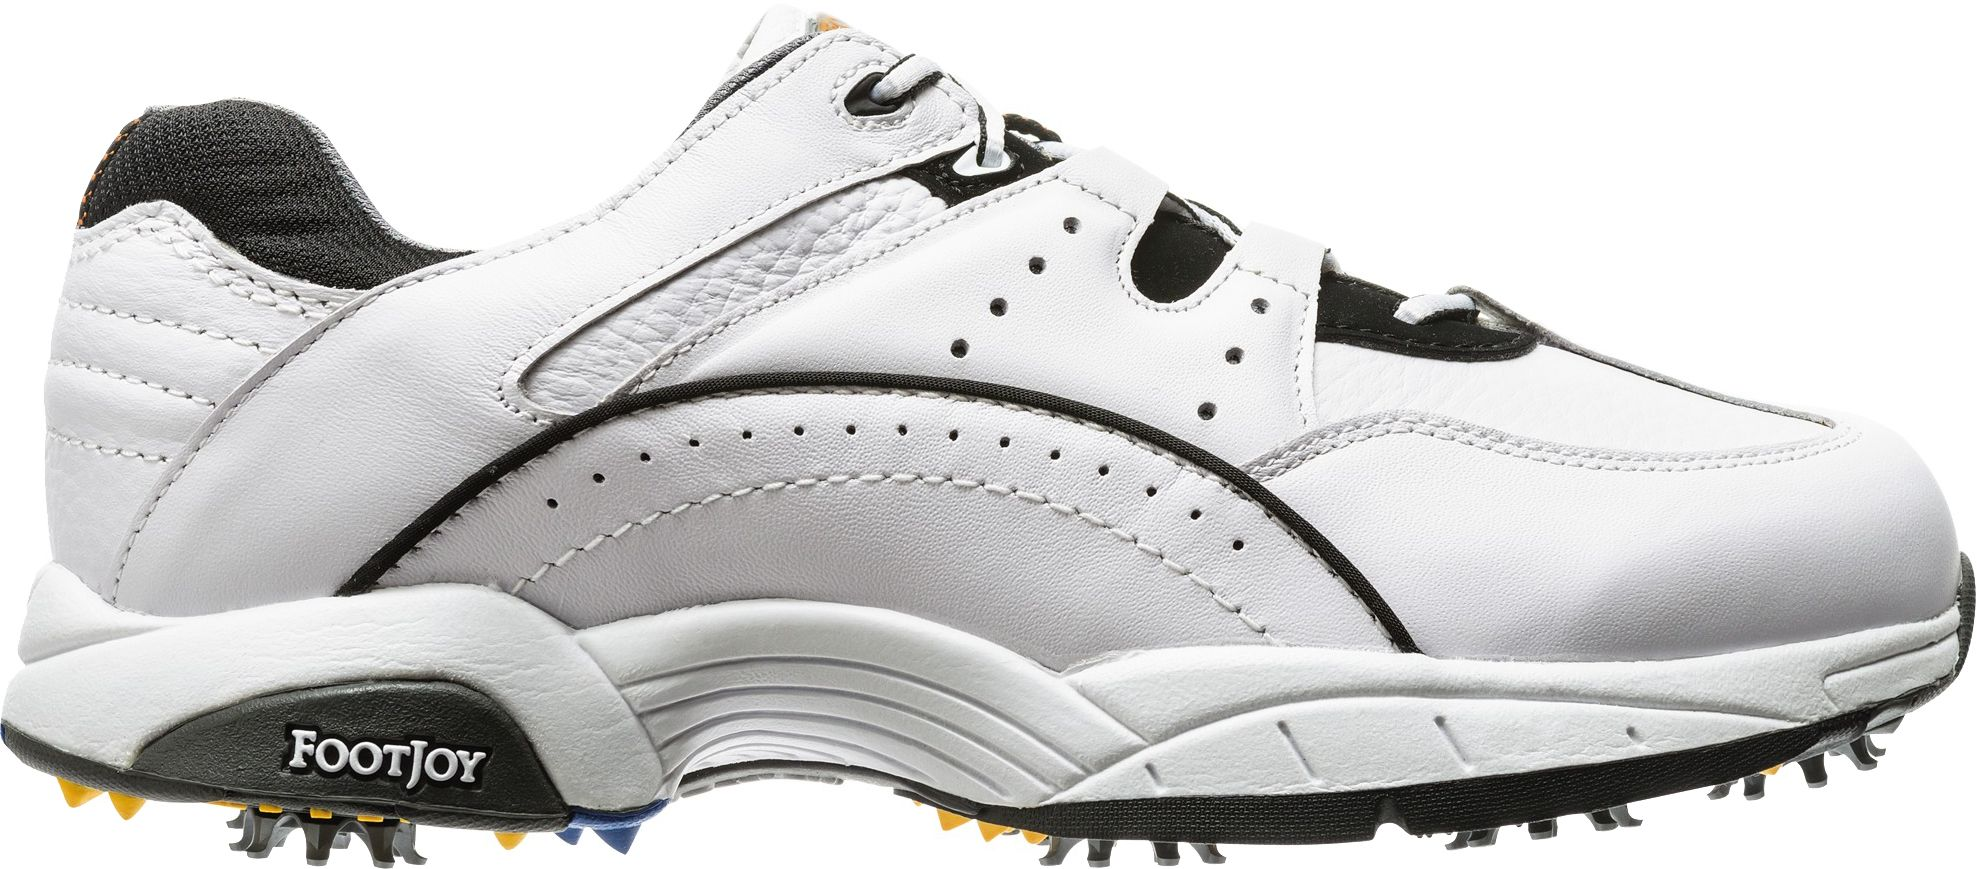 70%OFF FootJoy SuperLite Athletic Golf Shoes DICKS Sporting Goods ... d7d359ddfa6c